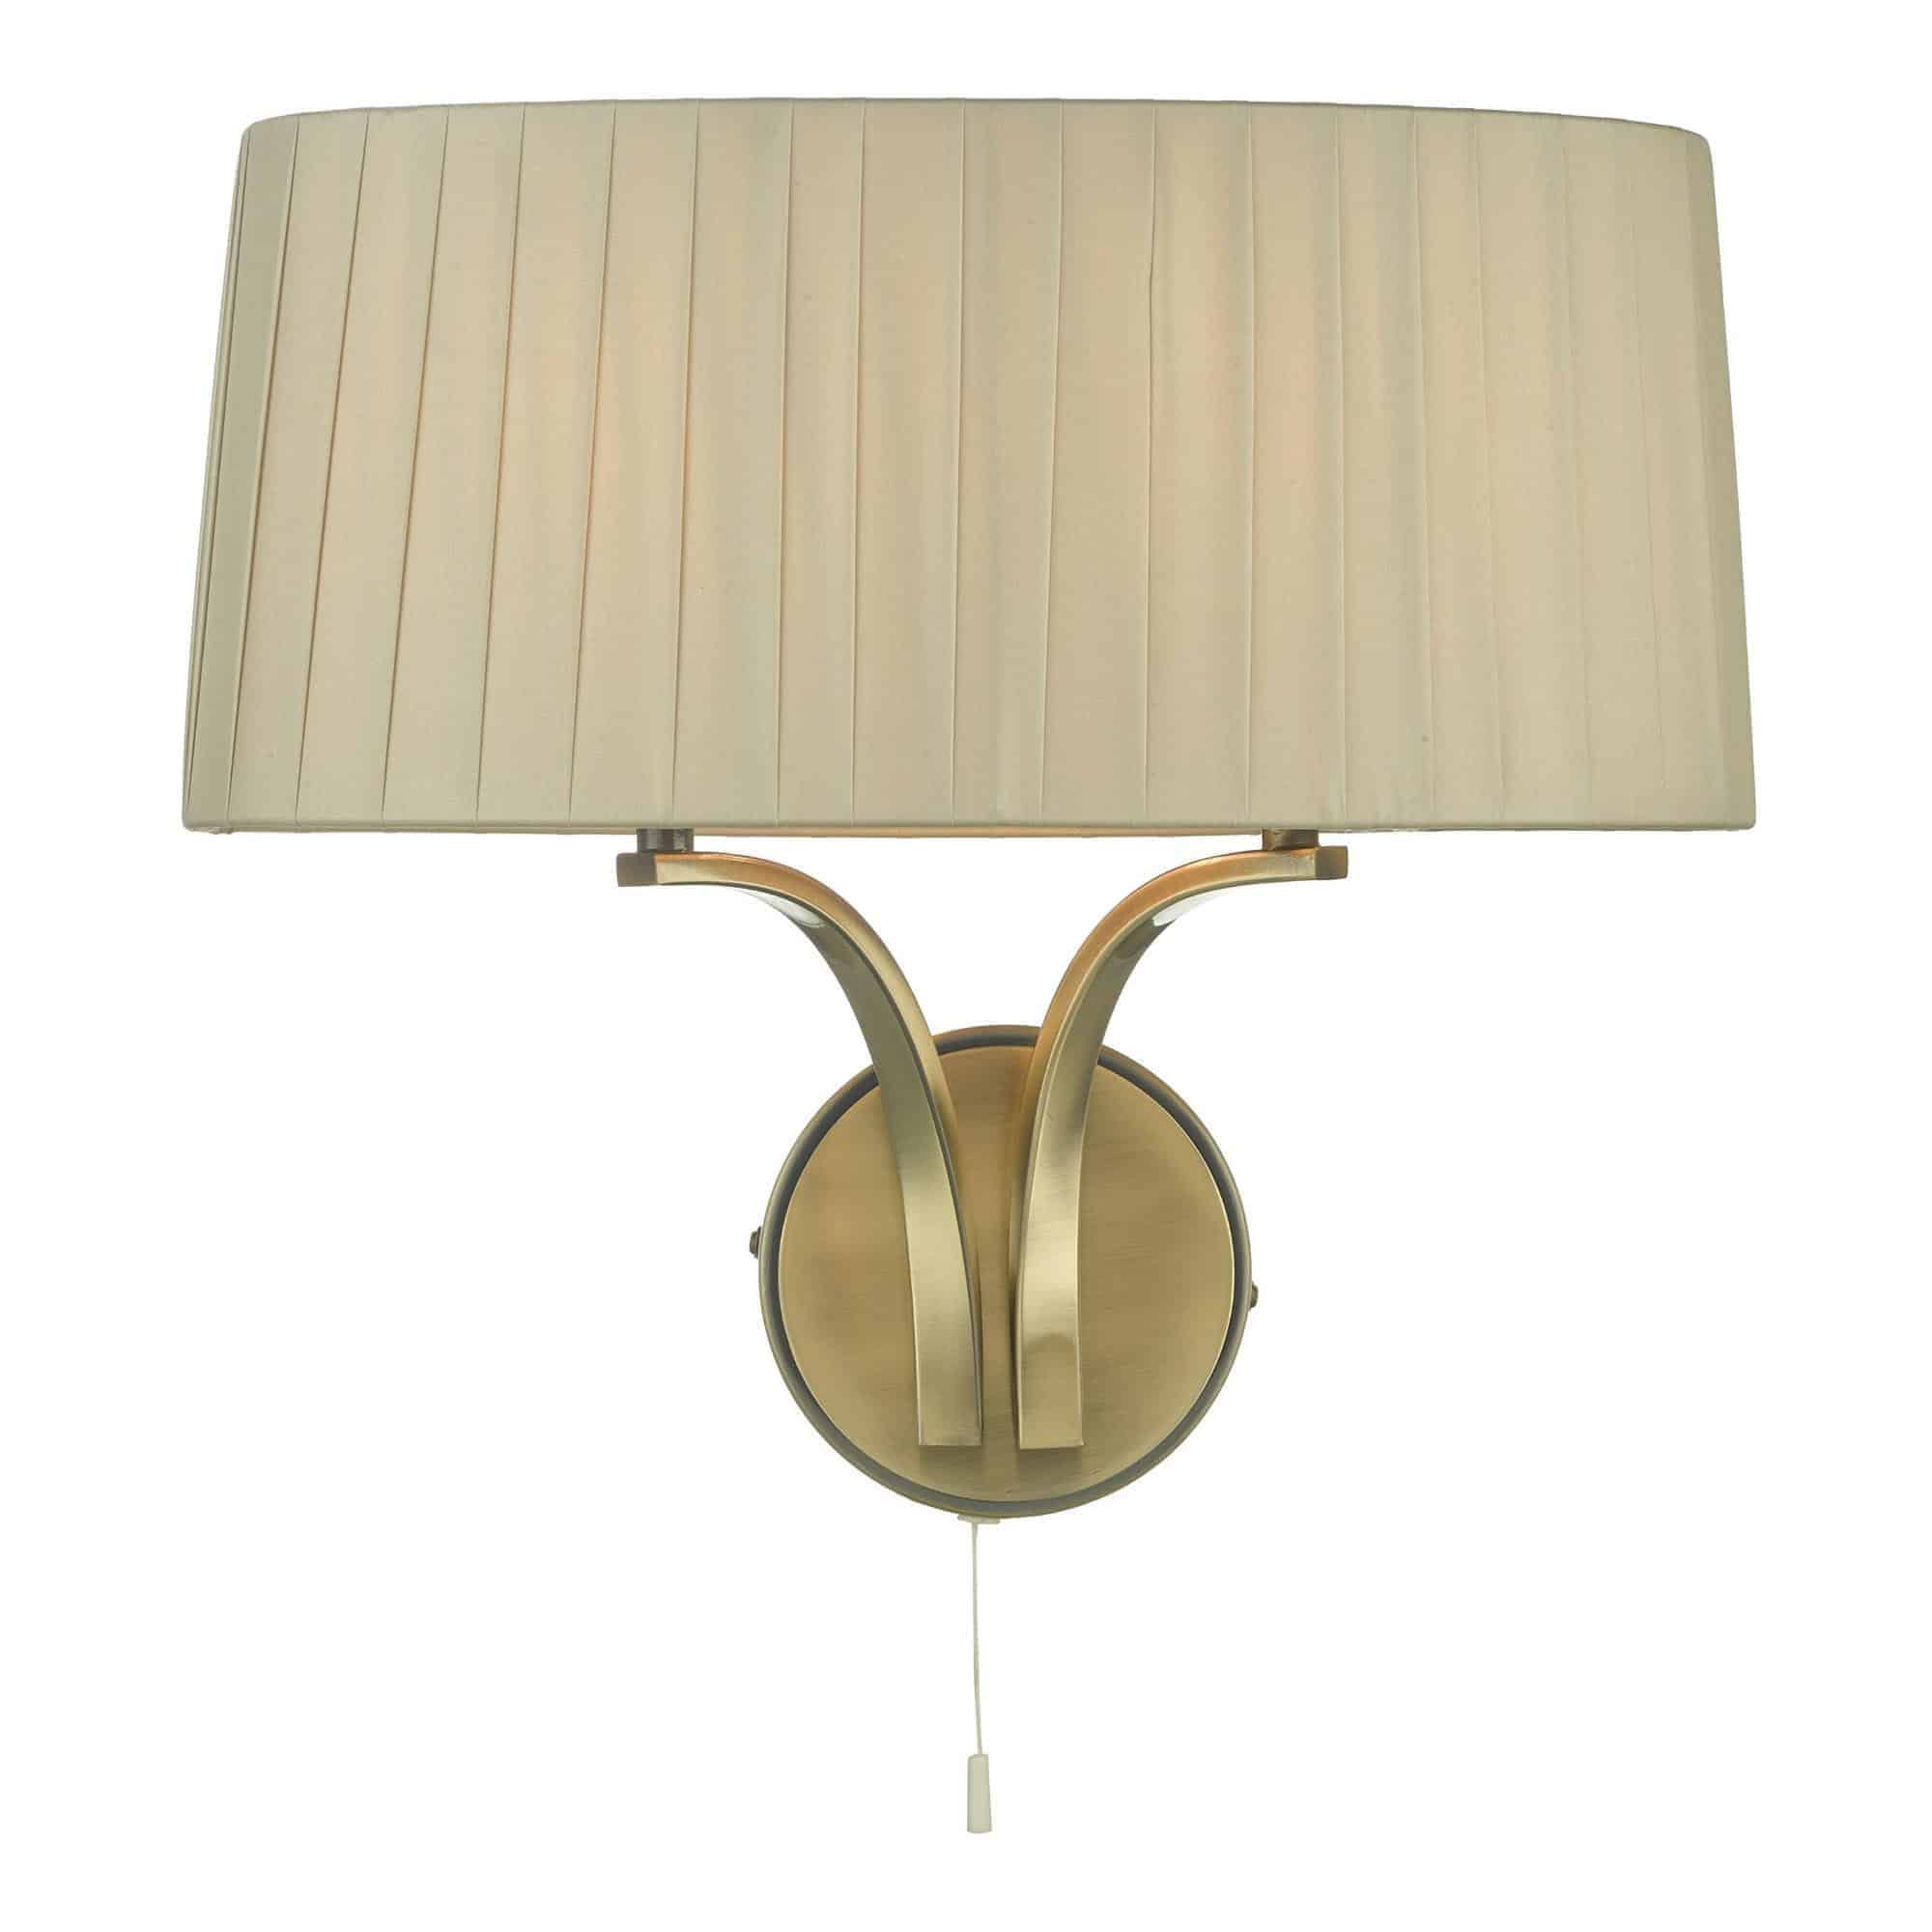 Dar CRI0929 Cristin 2 Light Wall Light Antique Brass With Taupe Shade